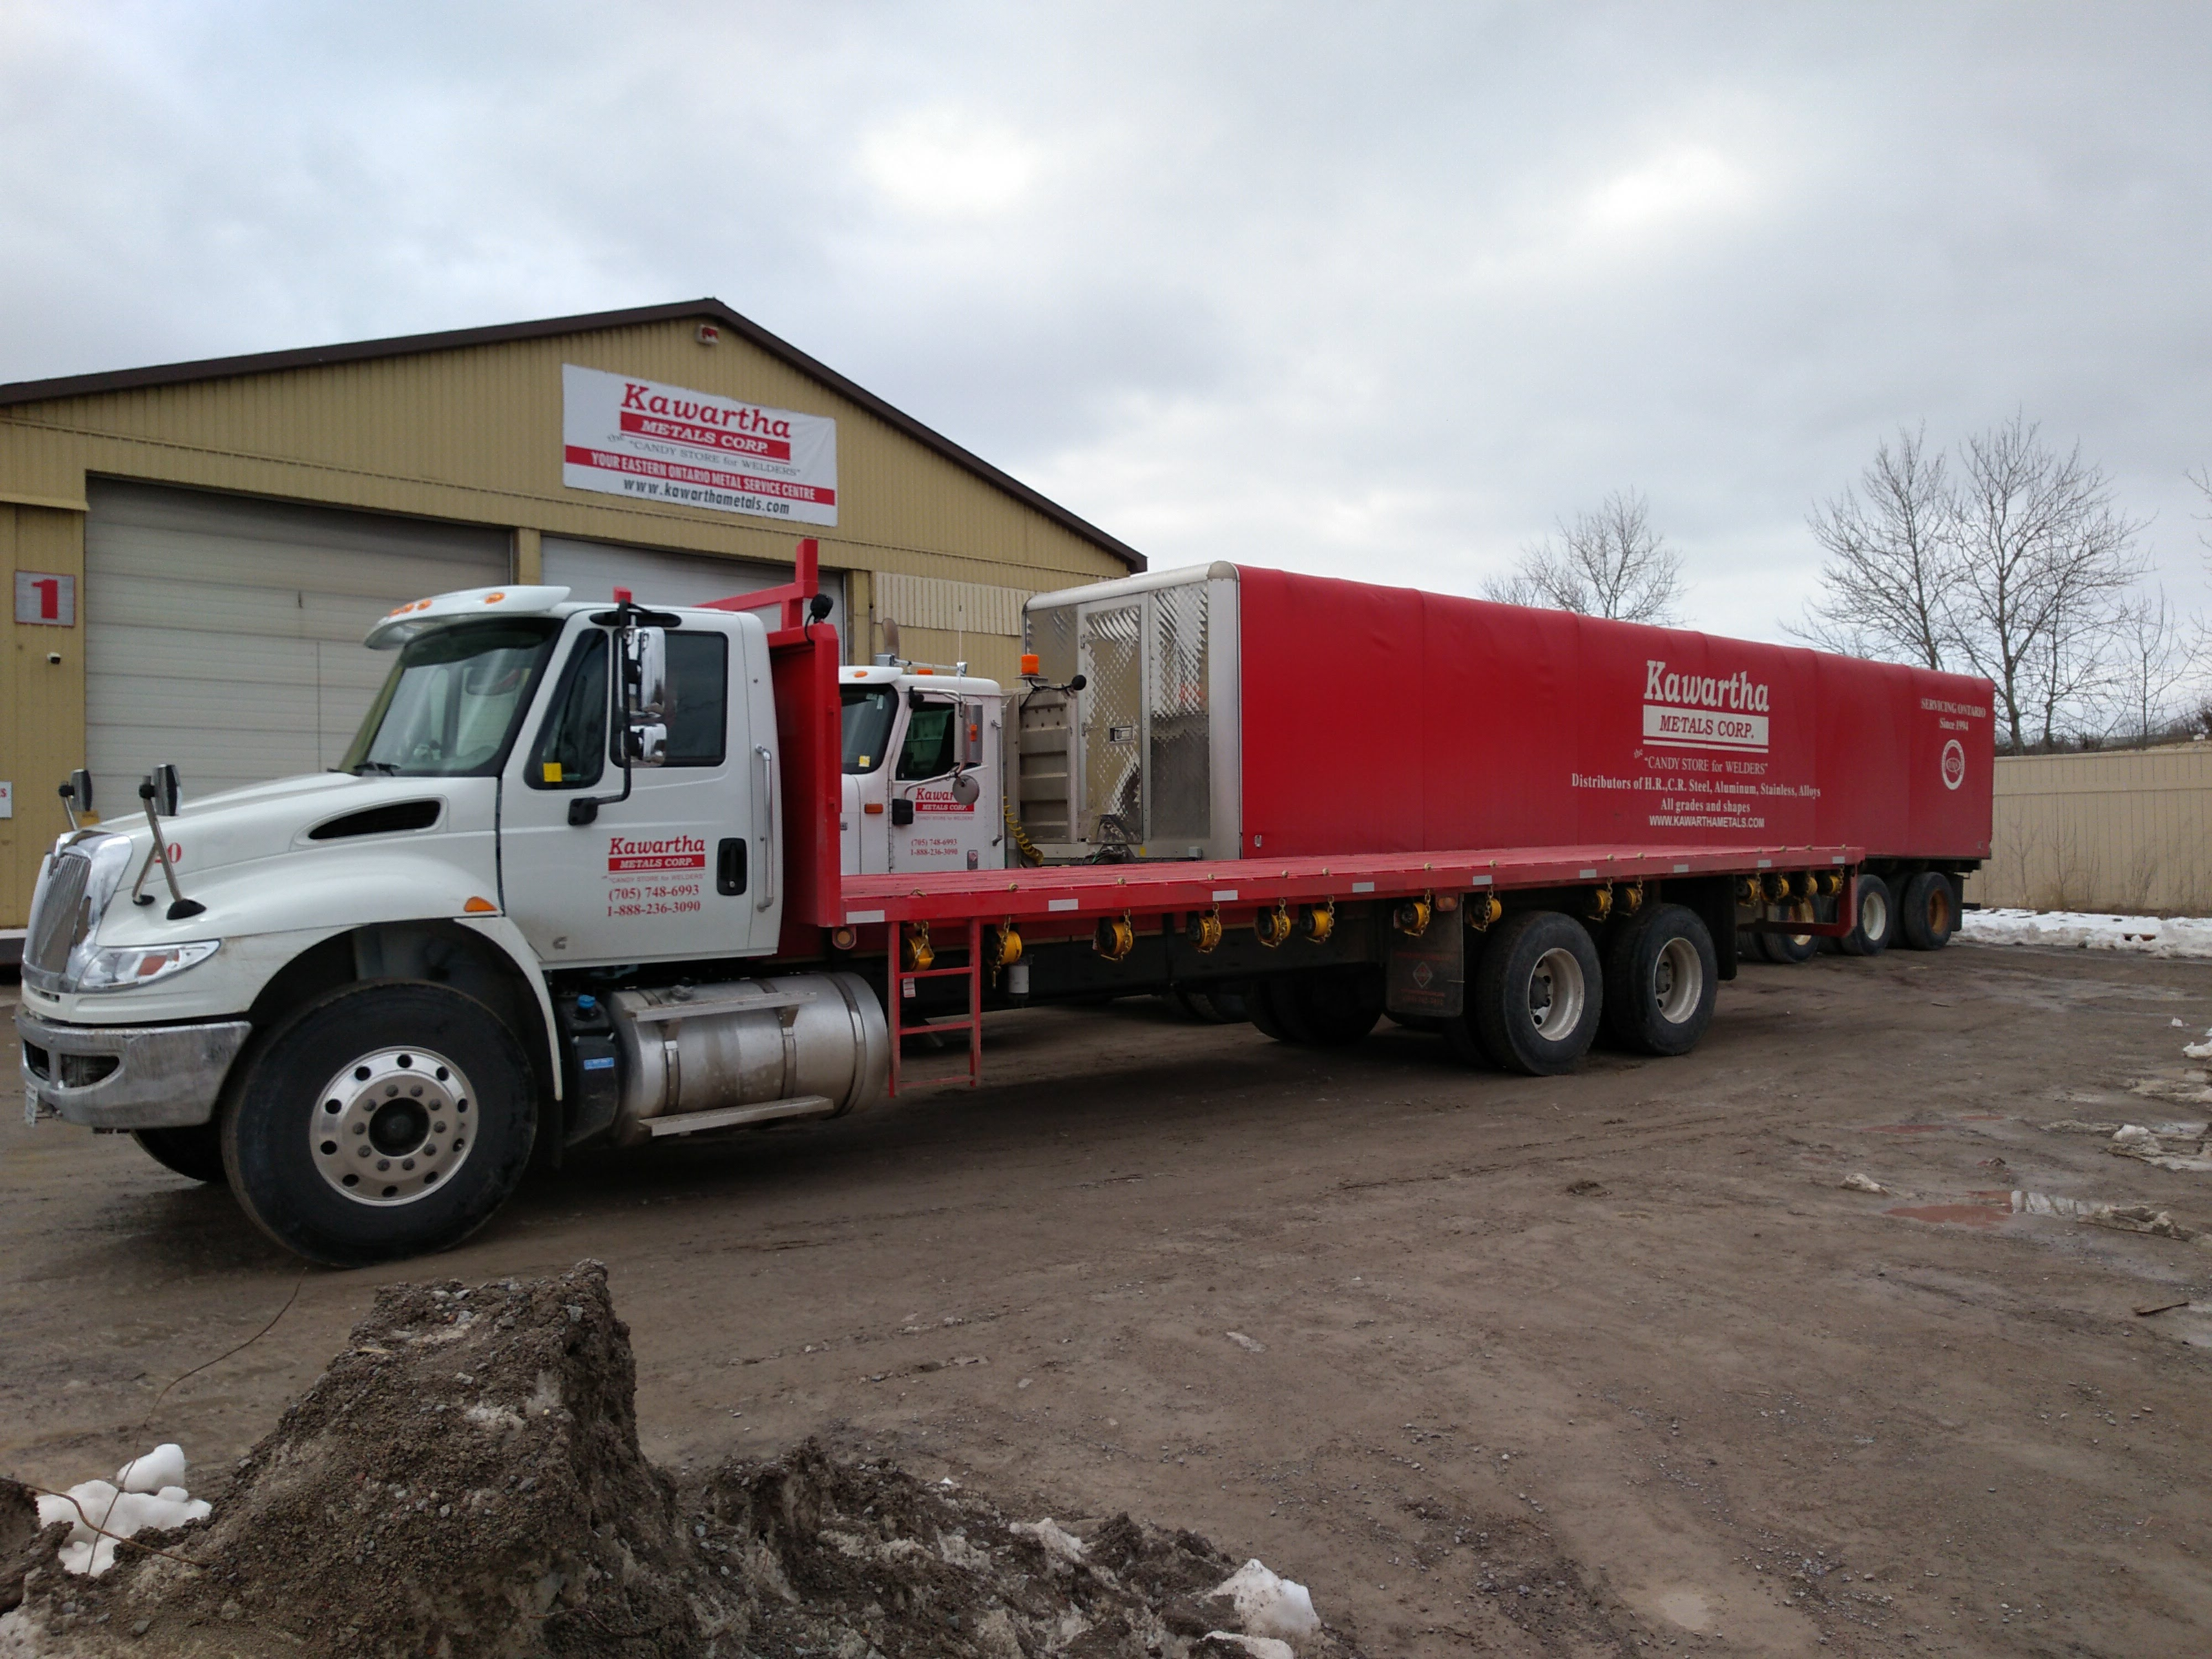 Kawartha Metals Corp. Locations - we deliver on time